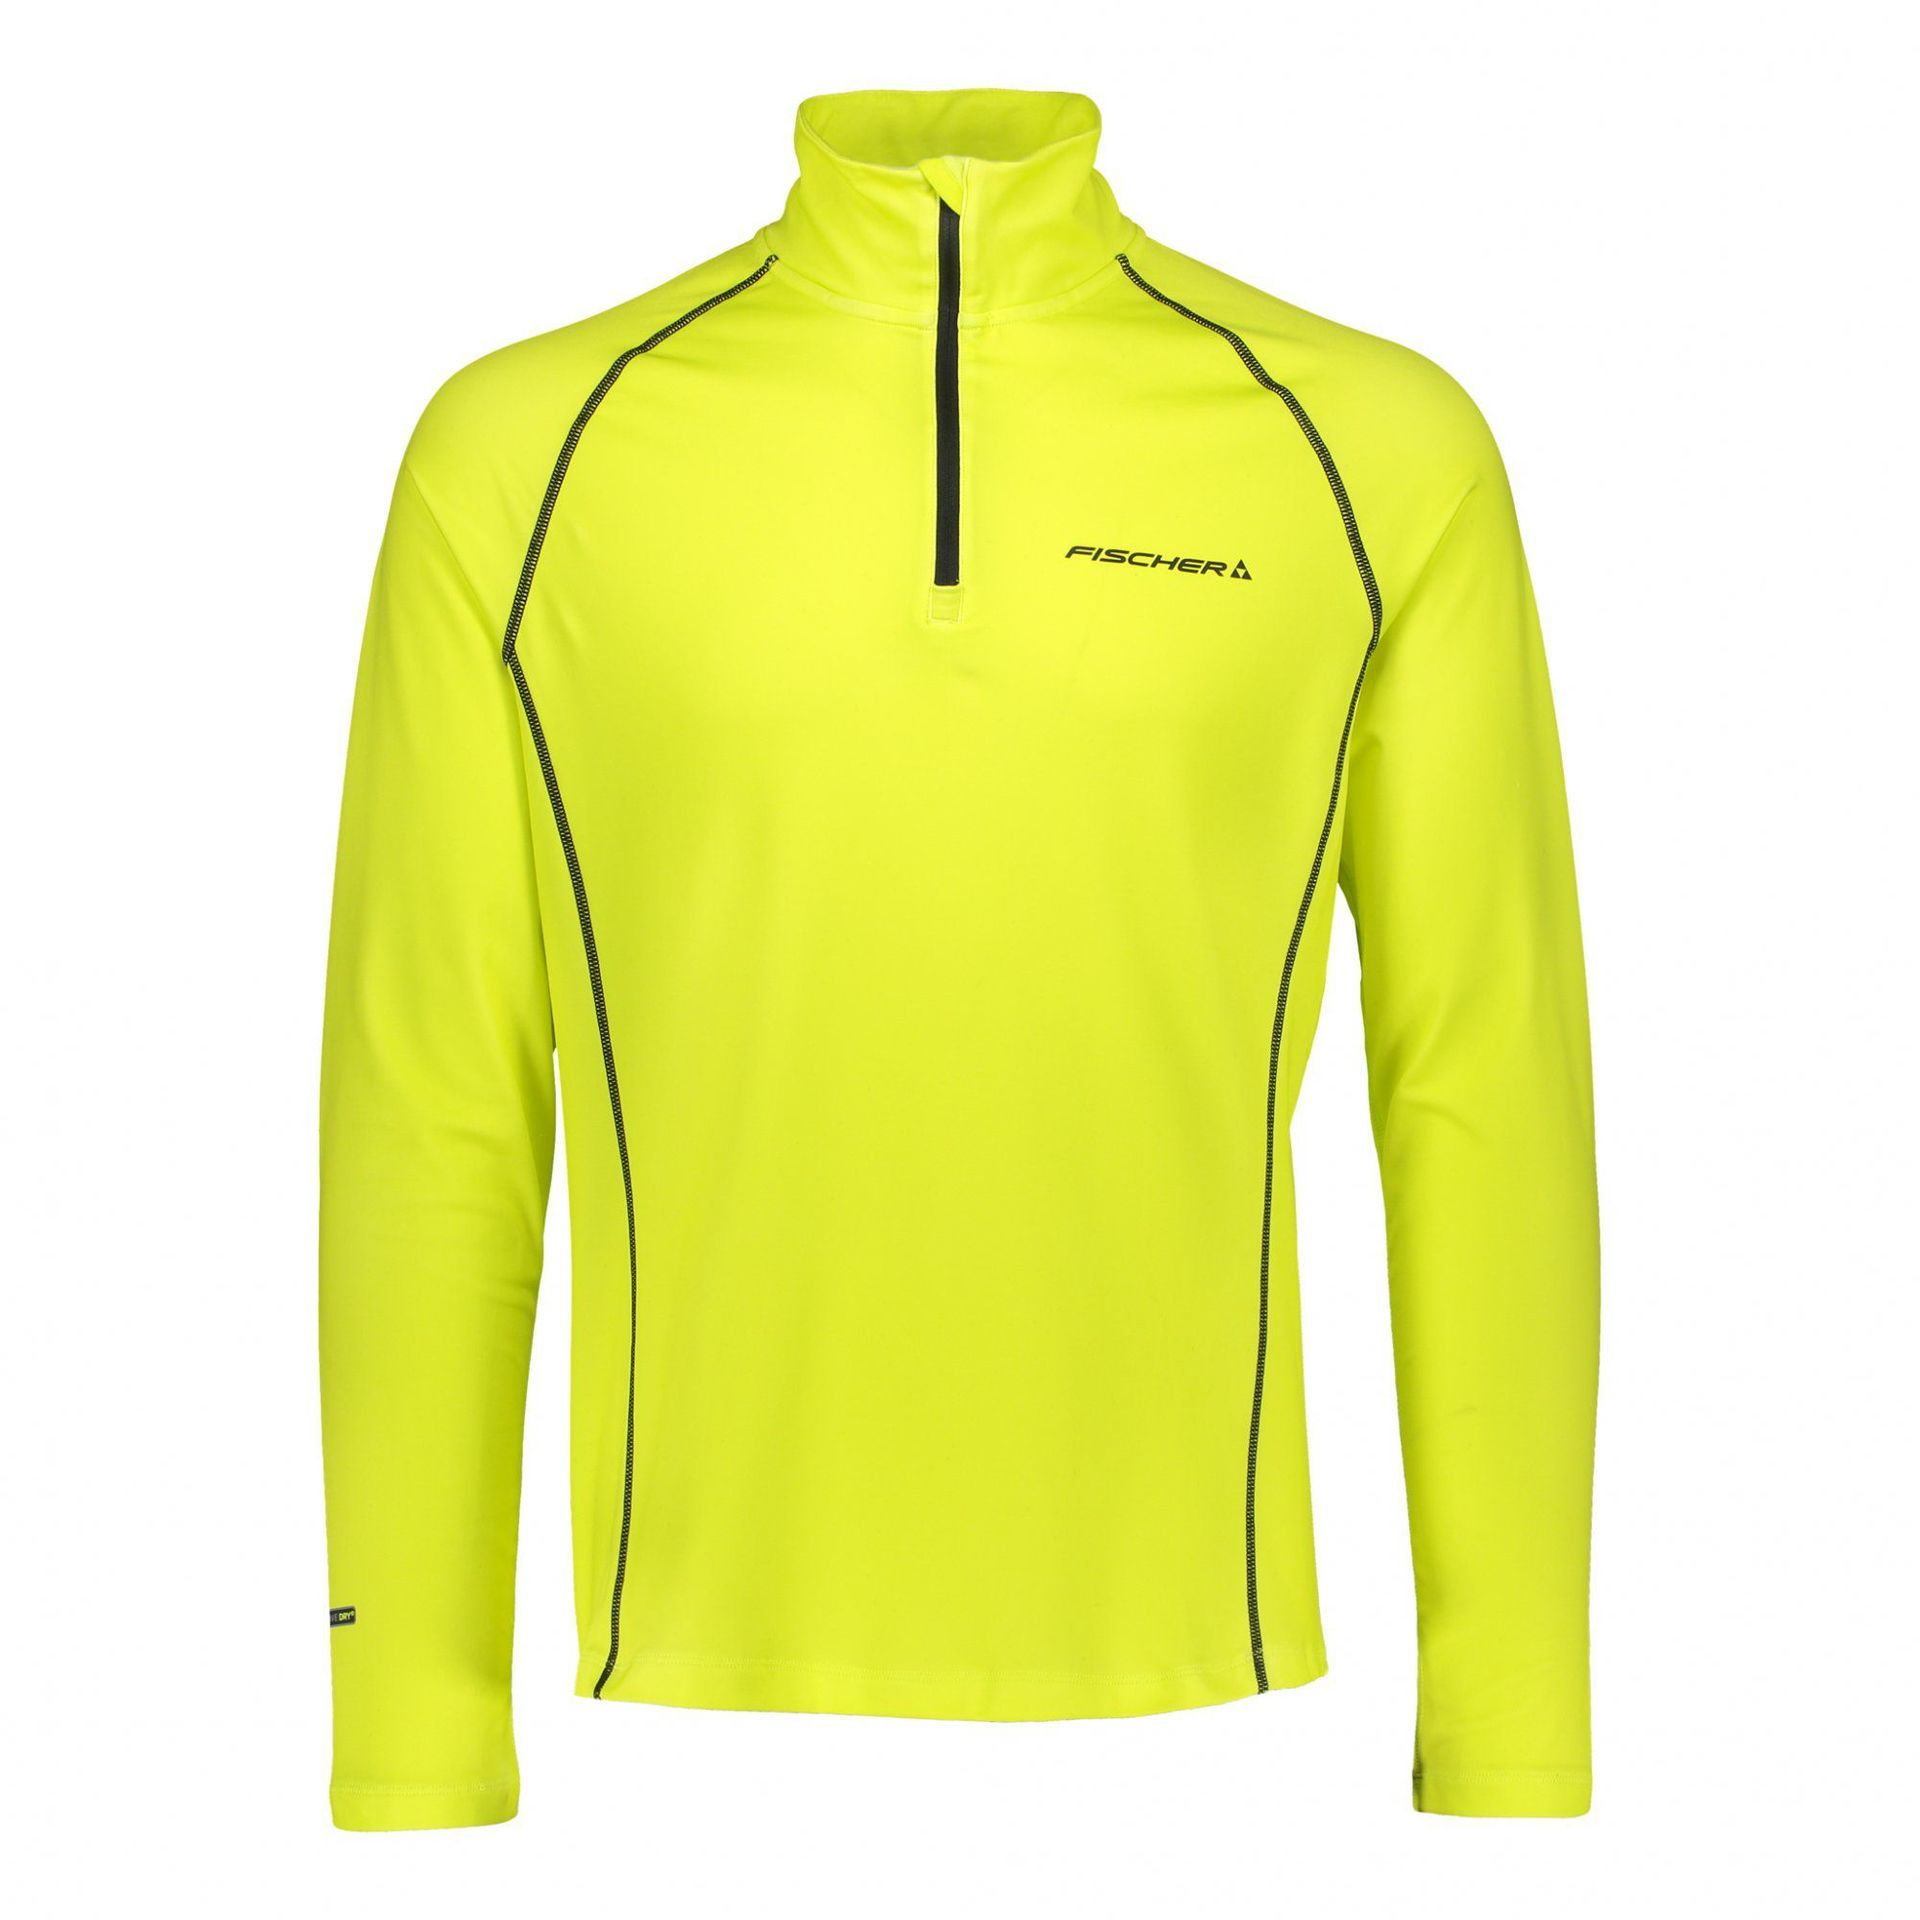 BLUZA FISCHER FALKERT 040-0201 N41F EVENING YELLOW